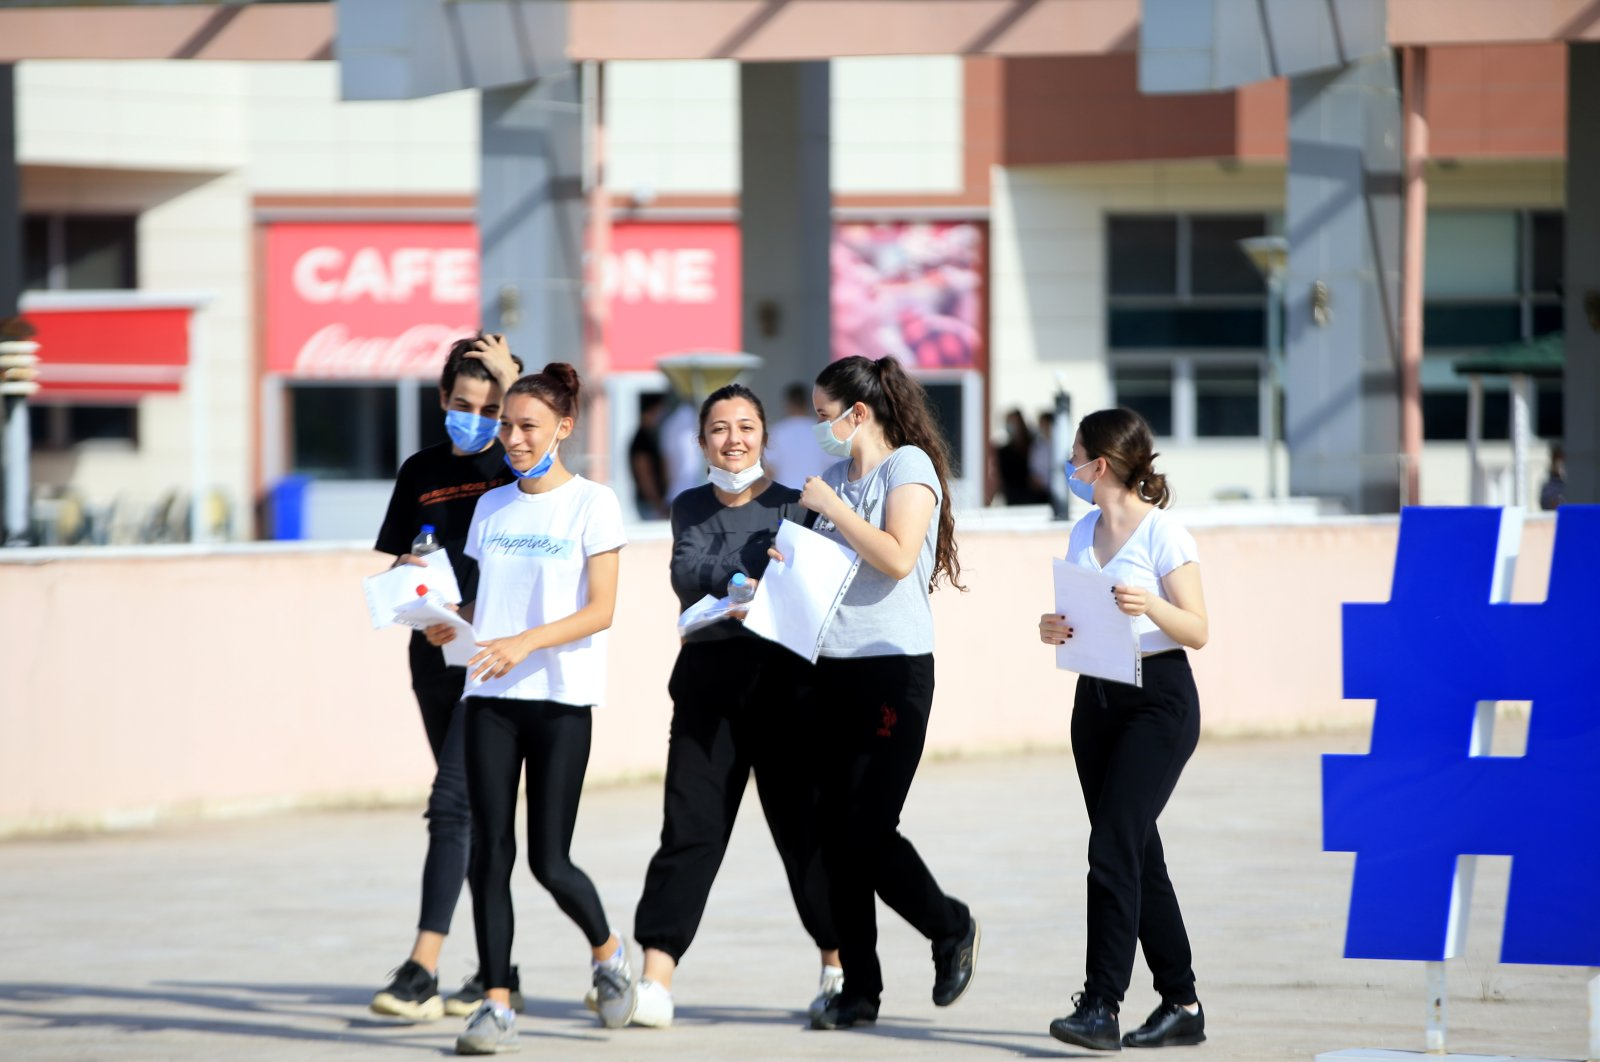 Students leave after taking the Higher Education Institutions Exam (YKS) at a school in Kırklareli, Turkey, June 26, 2021. (AA Photo)